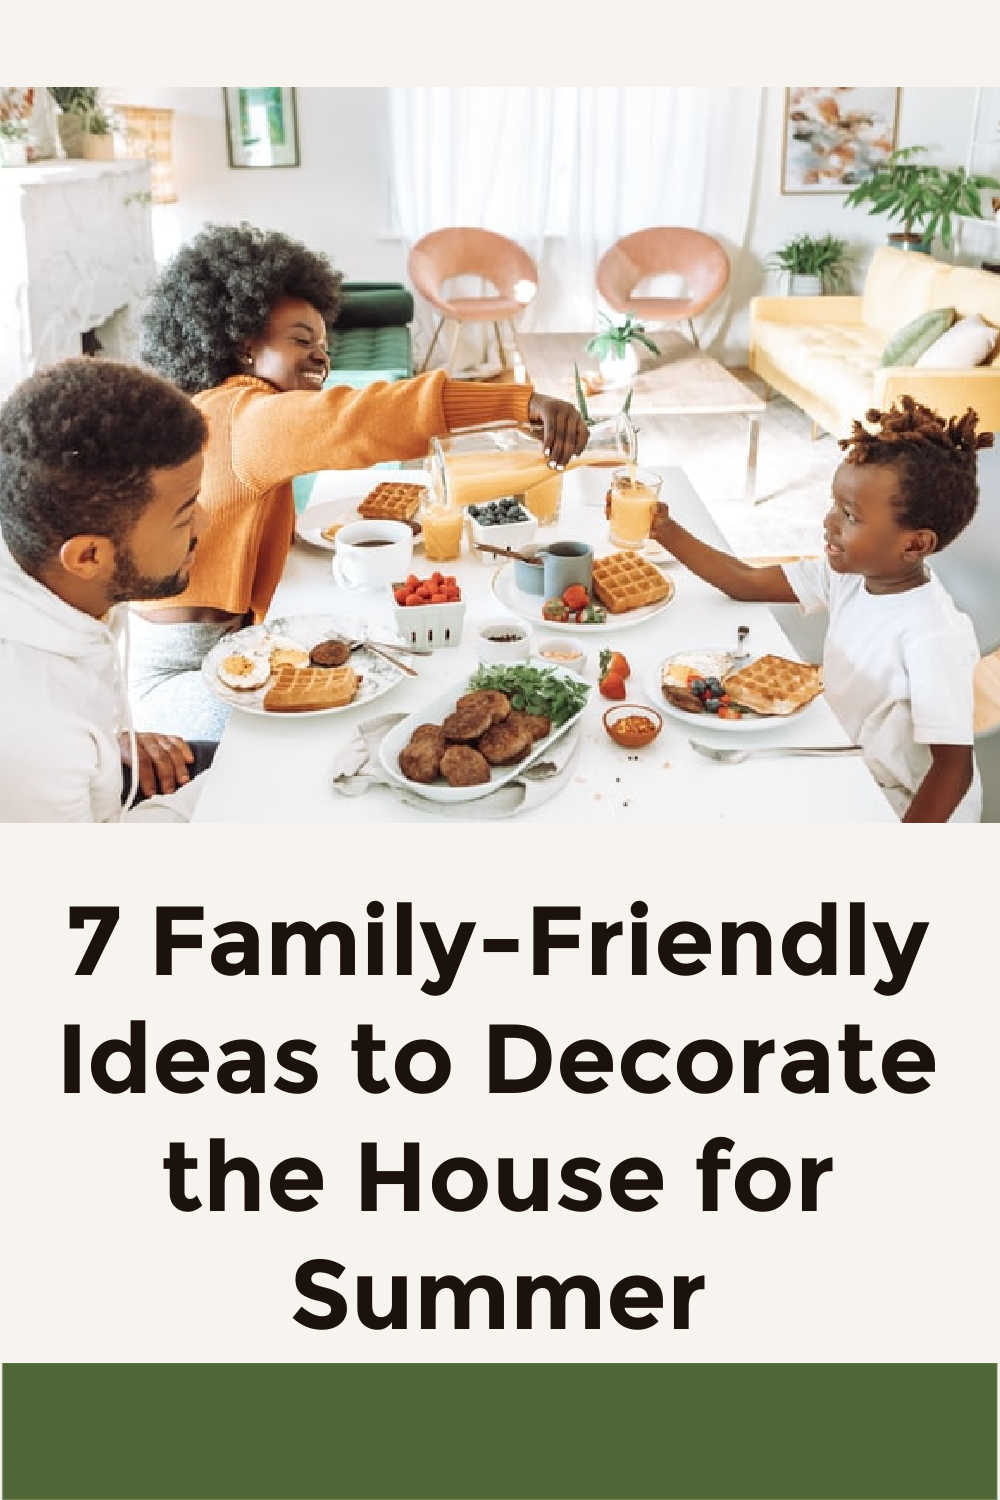 7 Family-Friendly Ideas to Decorate the House for Summer